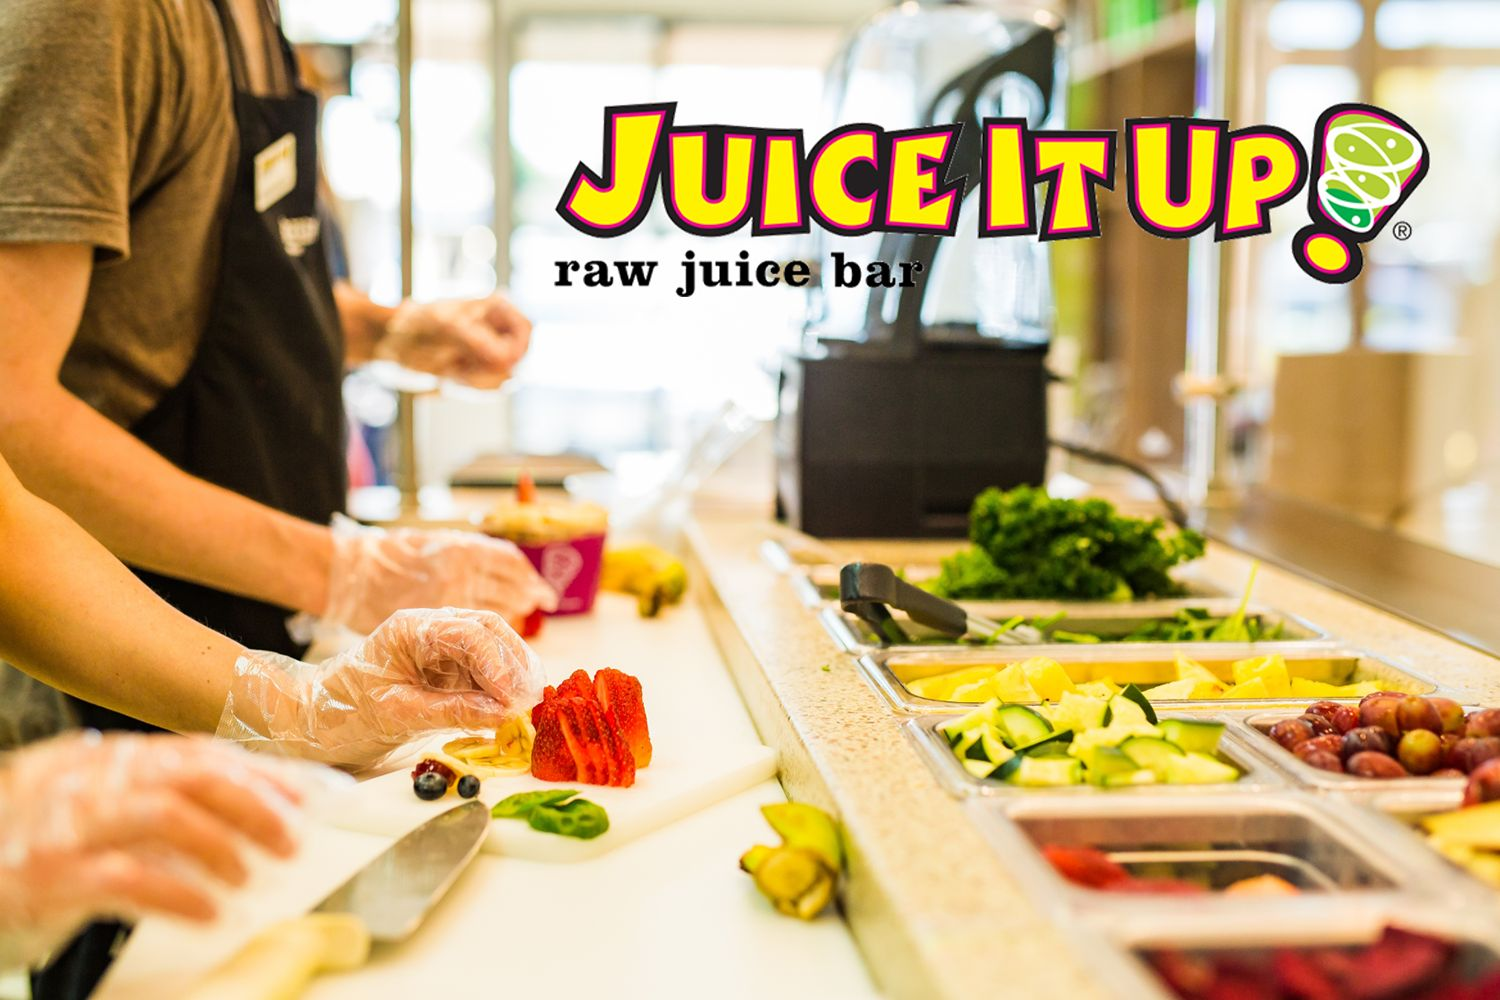 Juice It Up! Reports Sixth Consecutive Growth Quarter